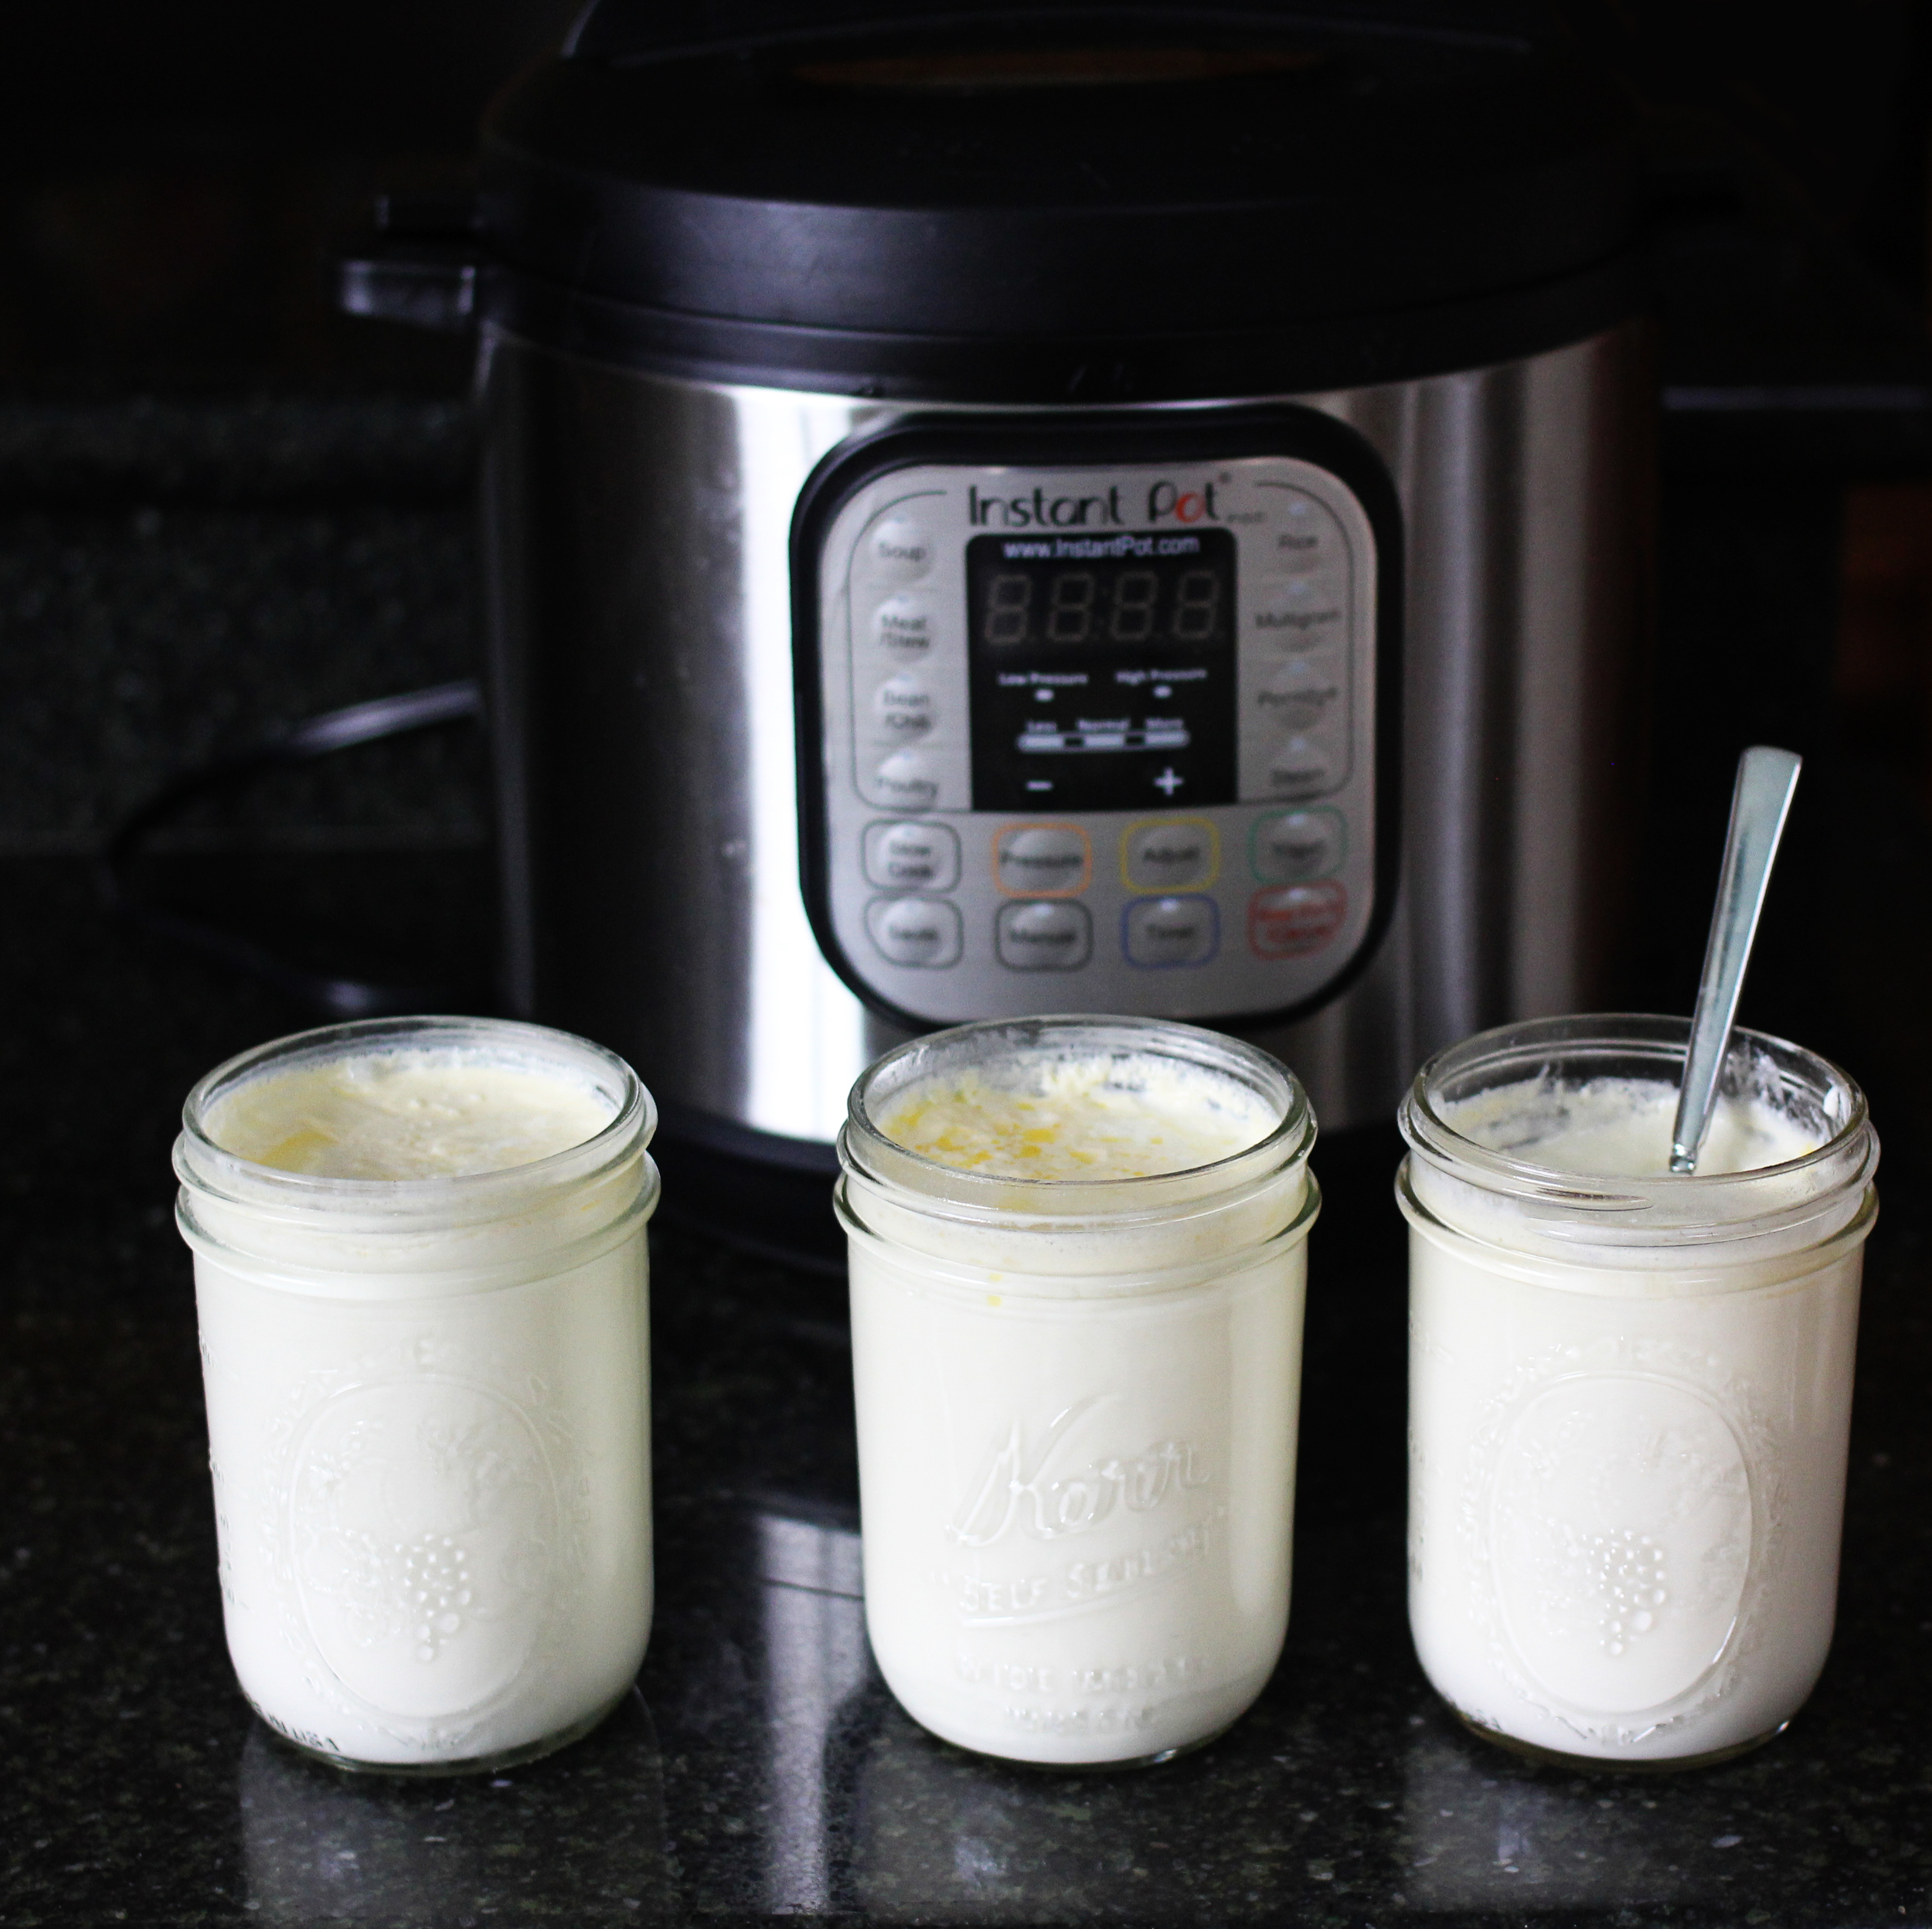 A step-by-step guide to making yogurt in an Instant Pot